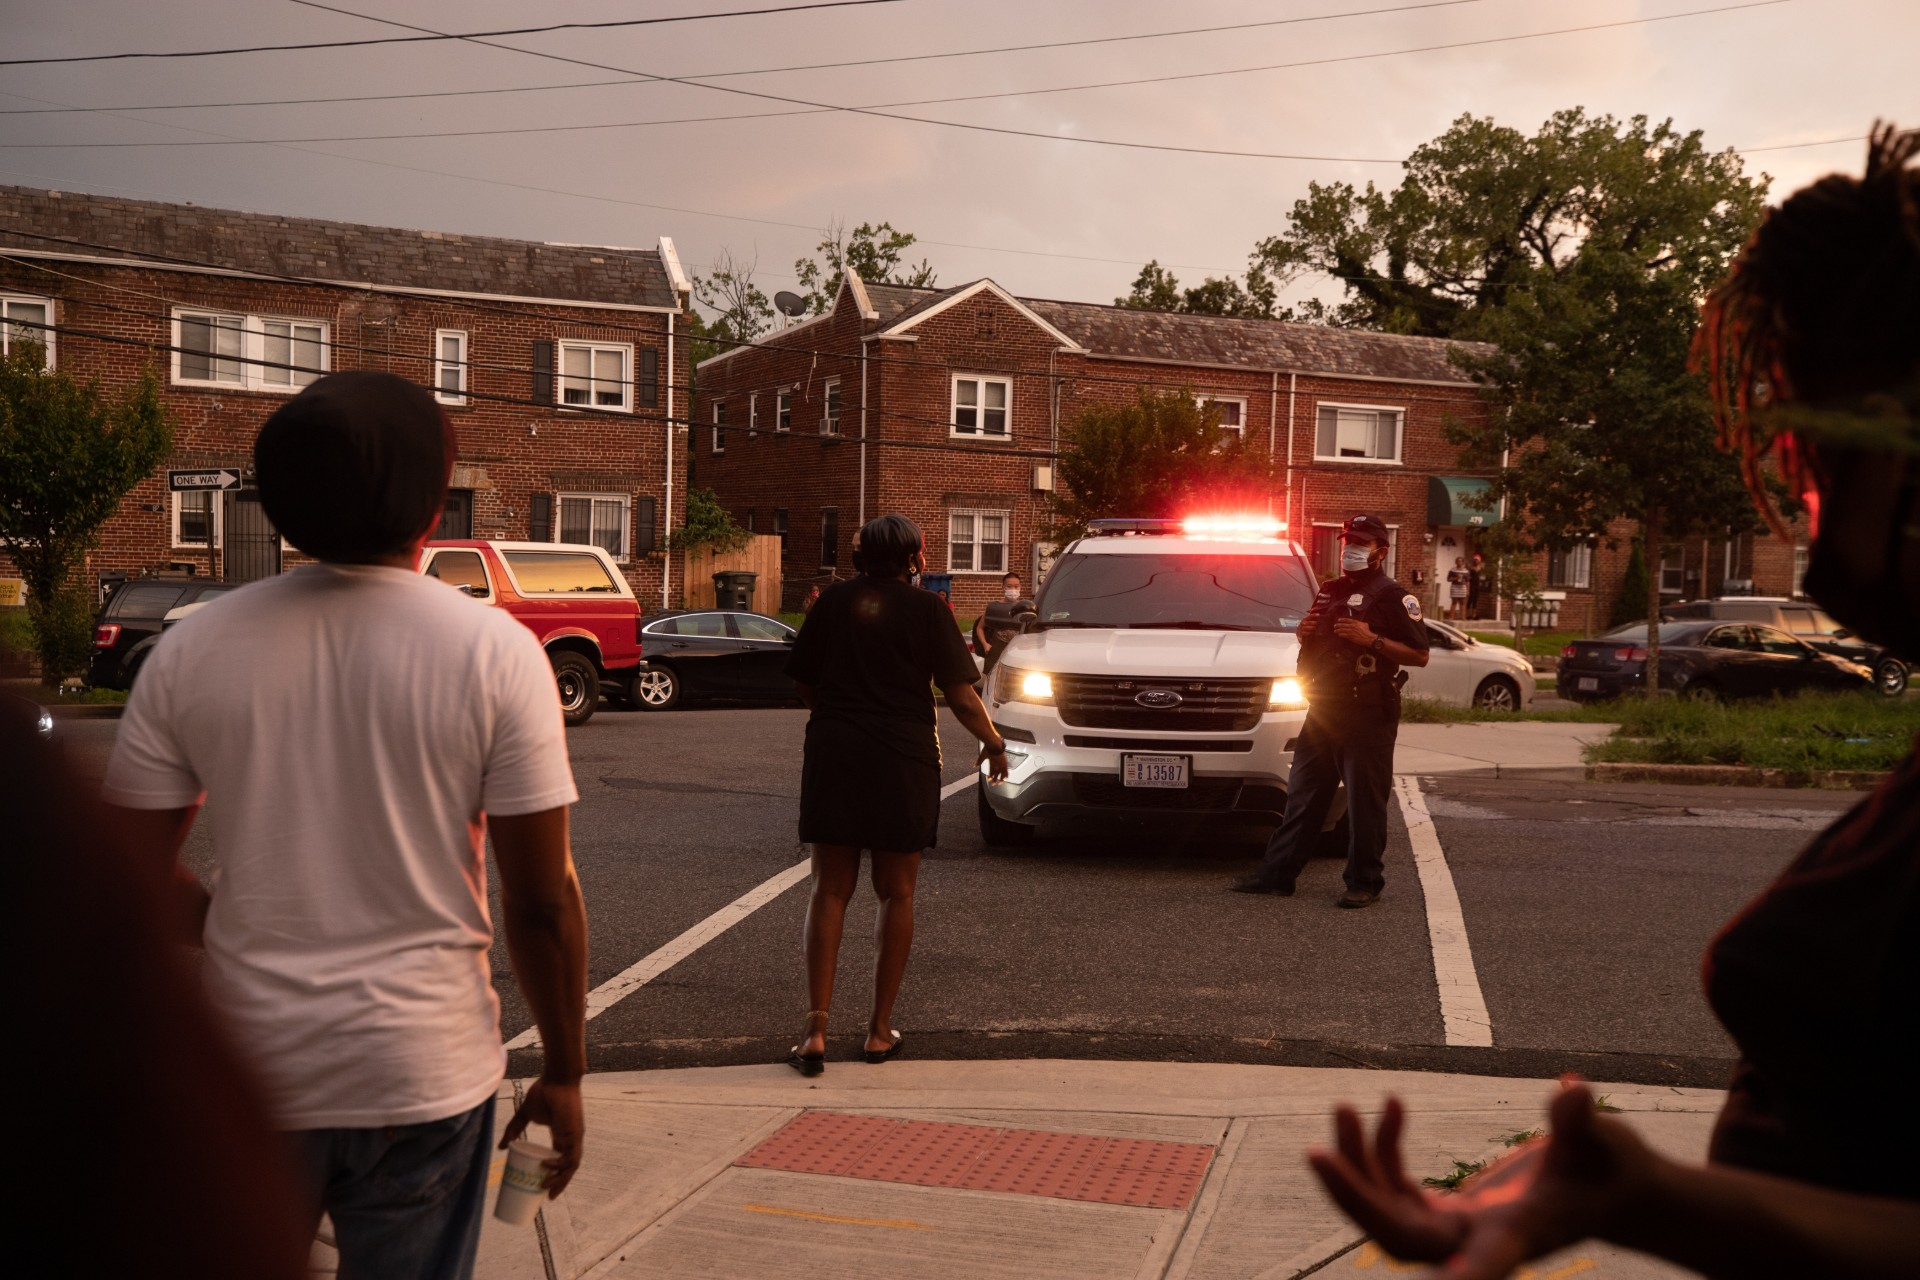 A woman confronts an officer near the southeast Washington D.C. crime scene where Metropolitan Police Department officers fatally shot a young black man Wednesday. (Kaylee Greenlee/Daily Caller News Foundation)